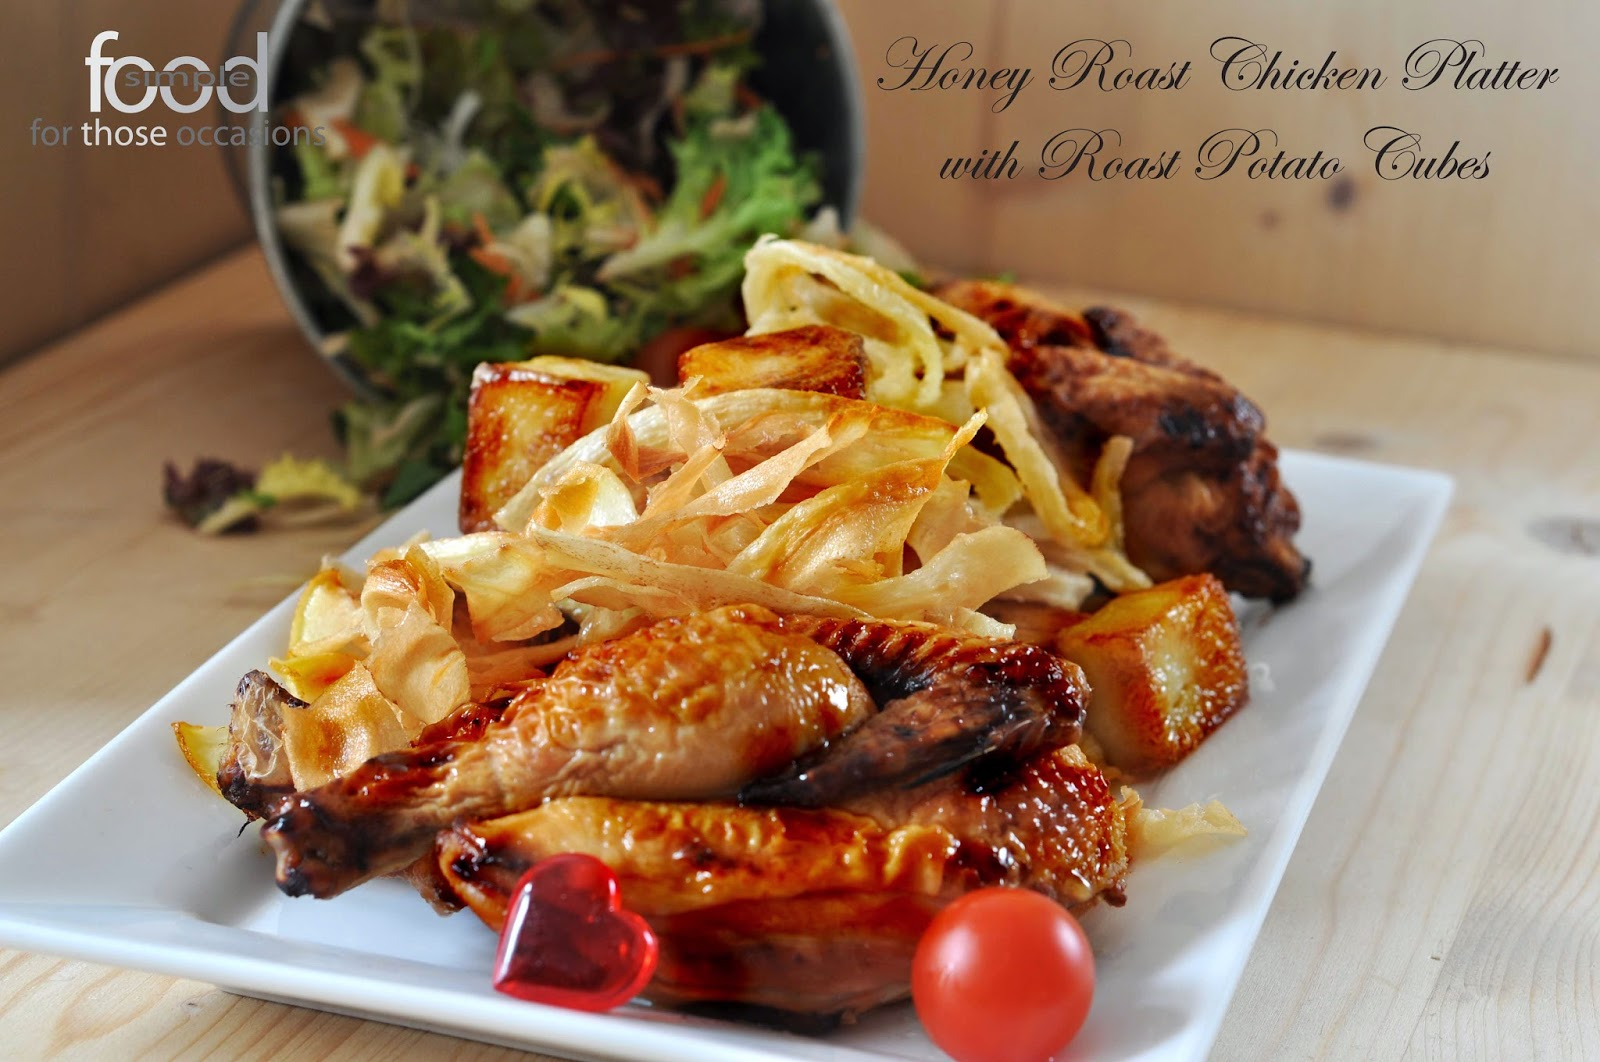 Honey Roast Chicken Platter with Roast Potato Cubes ~ Simple Food